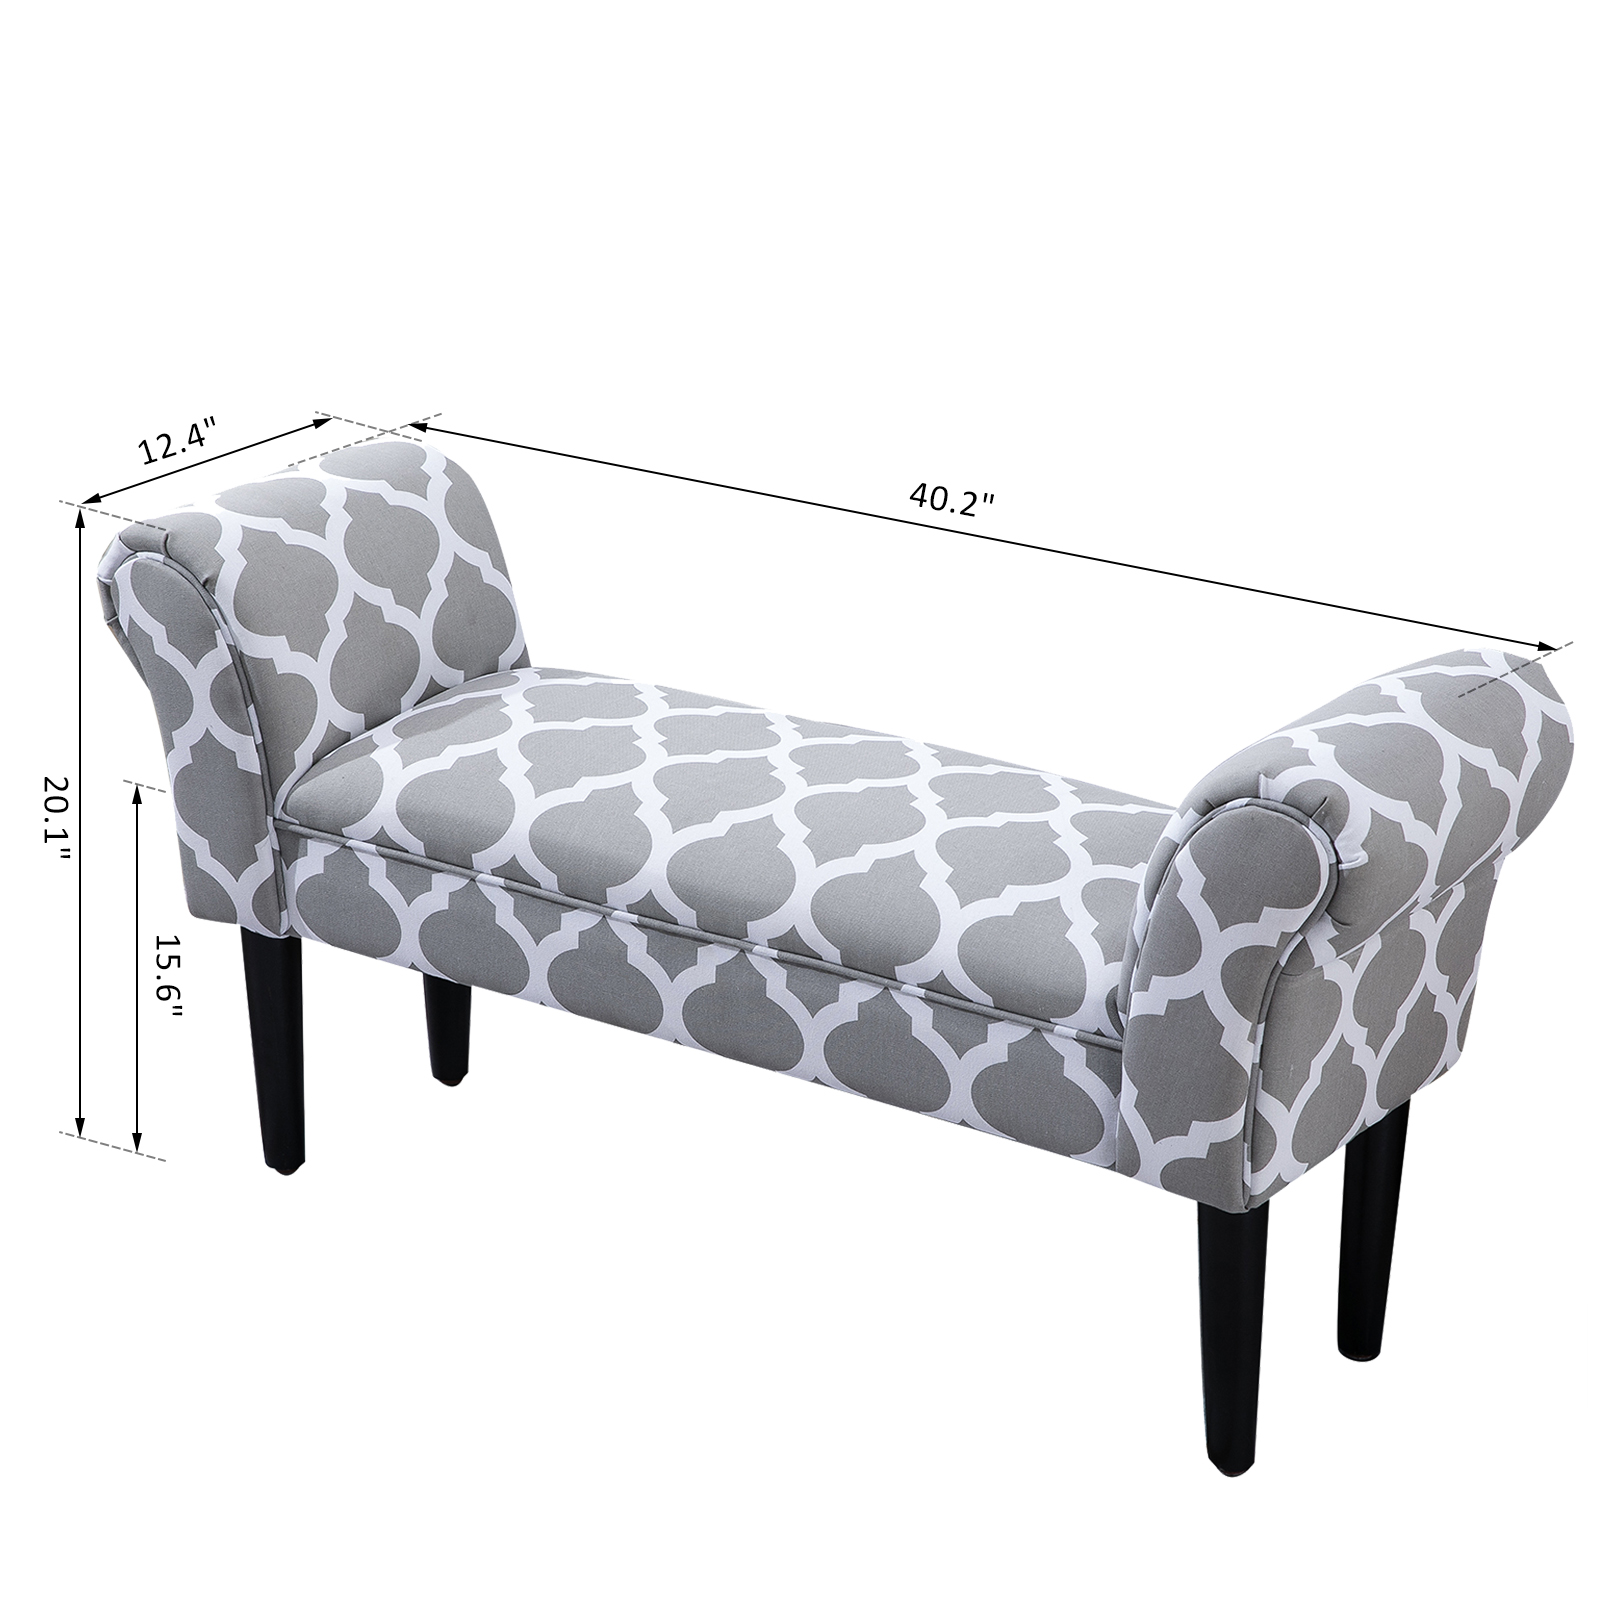 Elegant-Rolled-Arm-Bench-Bedside-End-of-Bed-Footstool-w-Arms-2-SIZE thumbnail 3